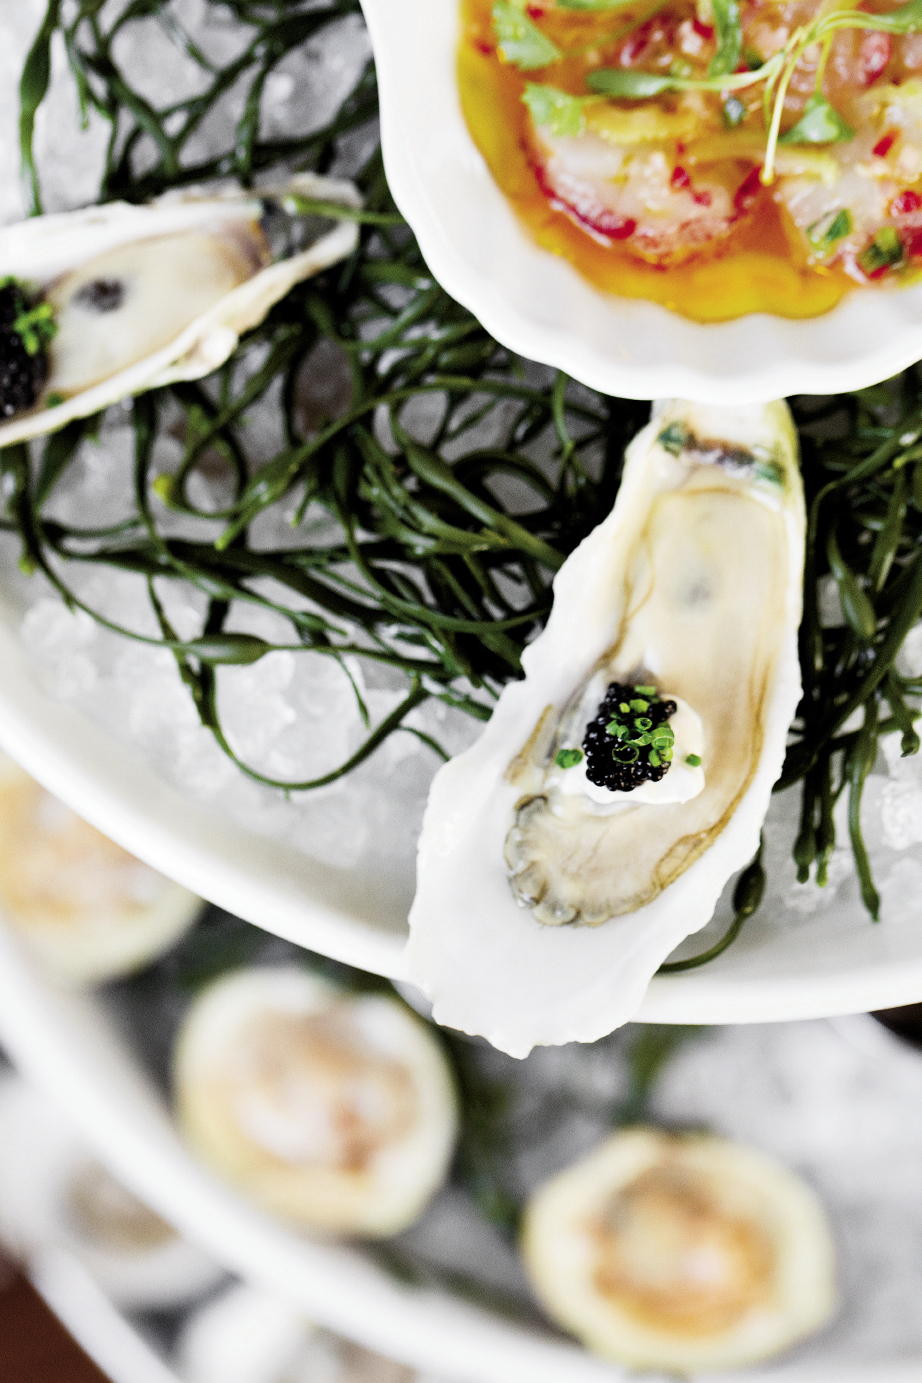 Clammer Dave's pristine Caper's Blades oysters make appearances at fine restaurants all over town—with caviar at Charleston's The Ordinary